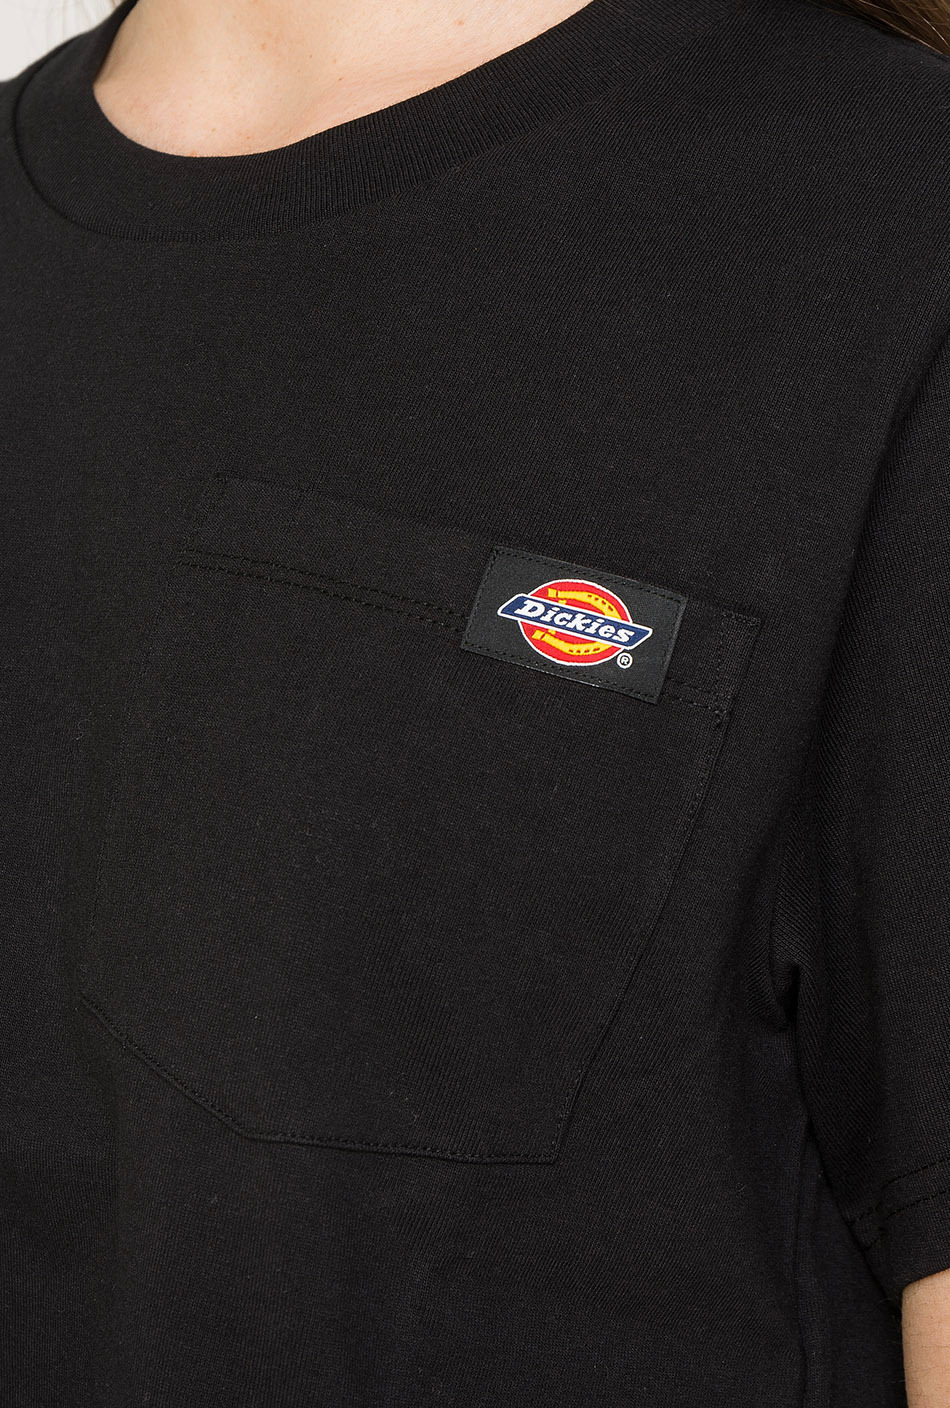 Dickies Ellenwood Black